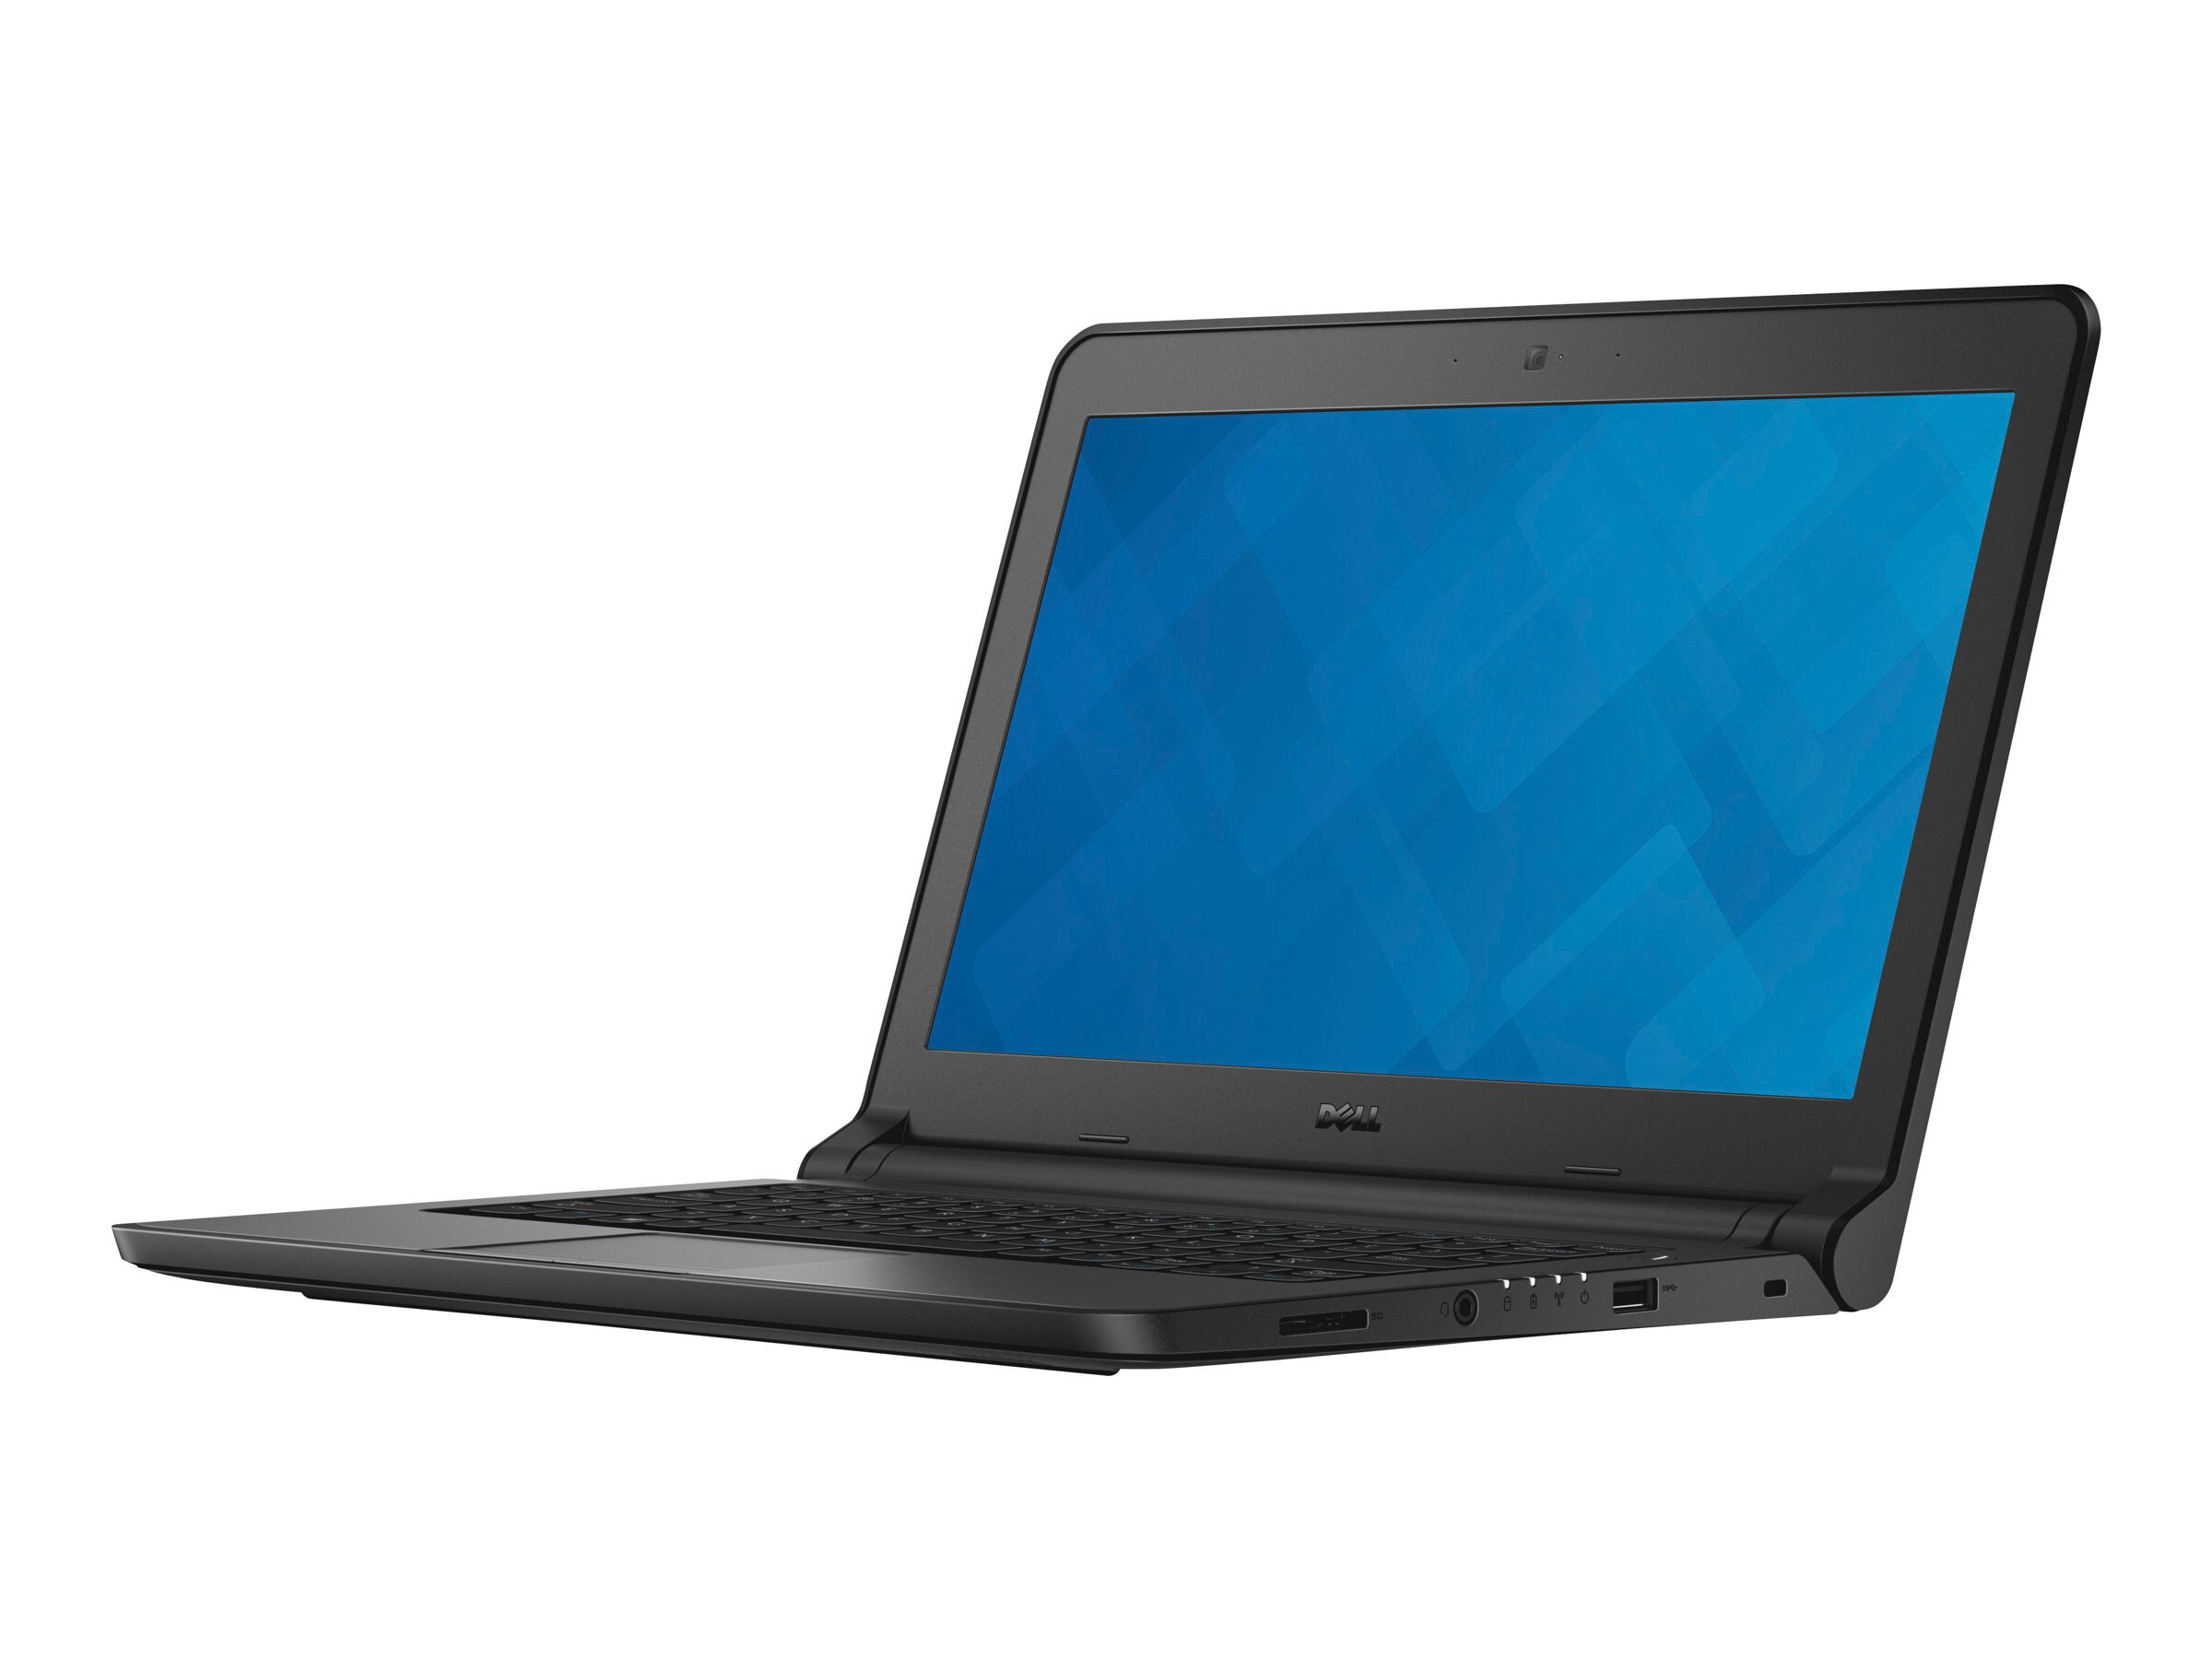 Dell WD5D5 Image 1